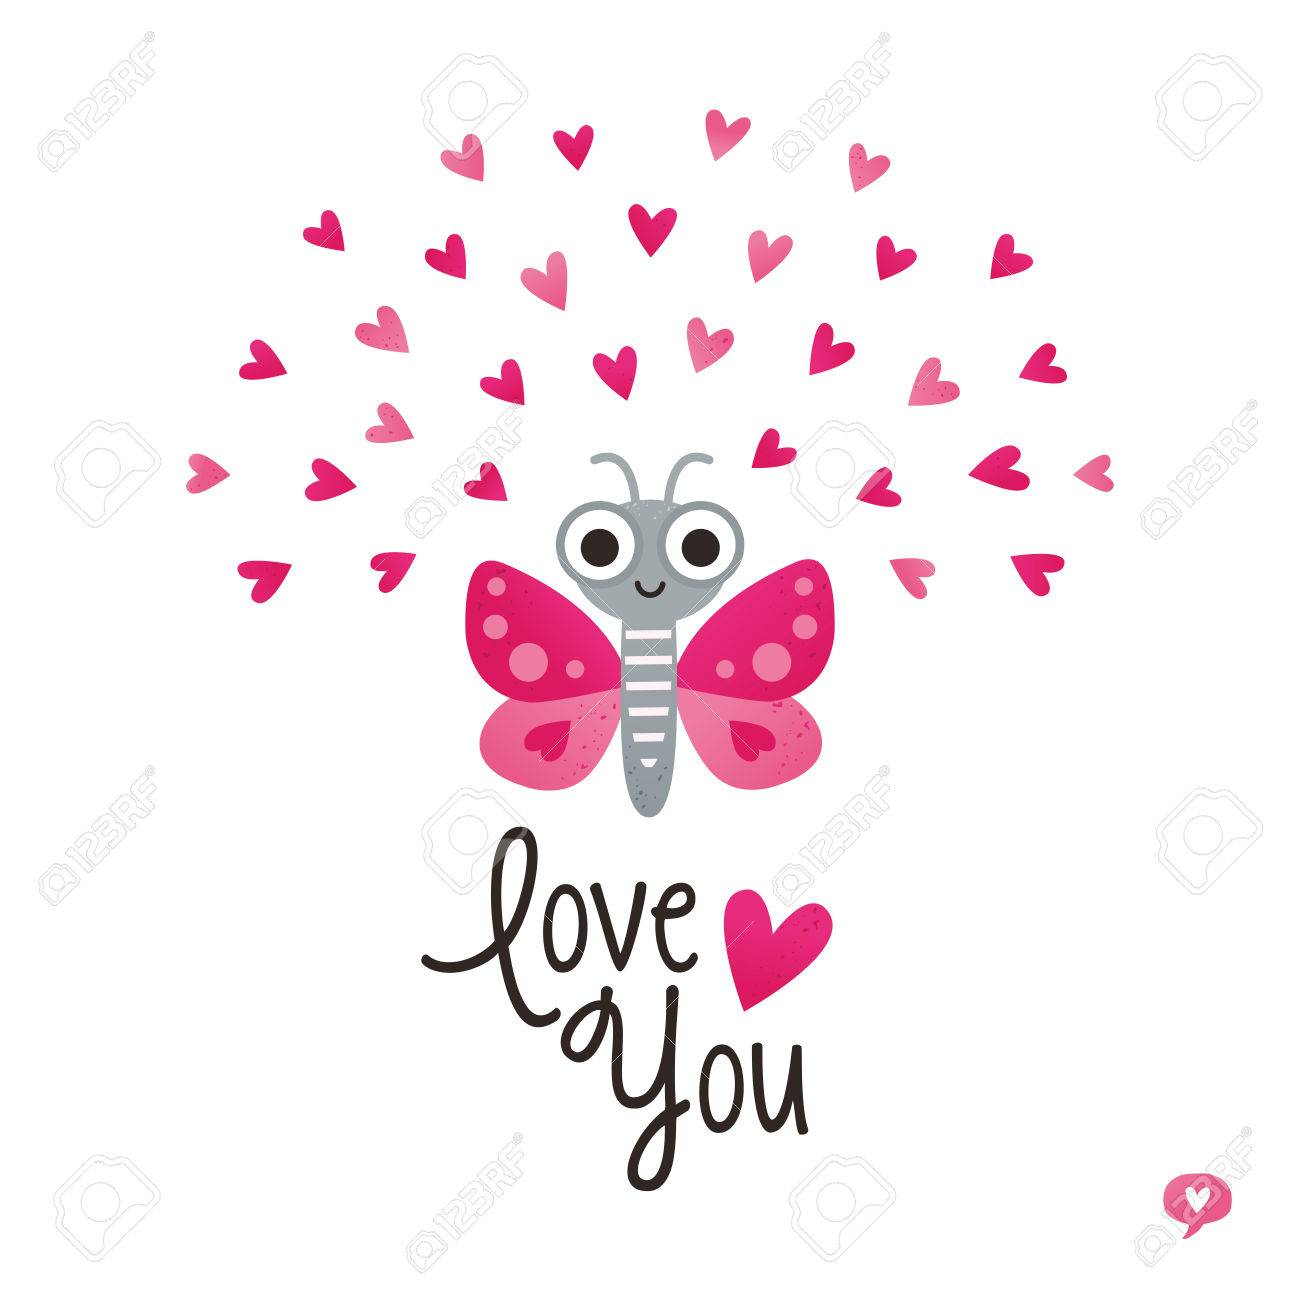 Cute Love Card In Red And Pink With Butterfly And Hearts Text